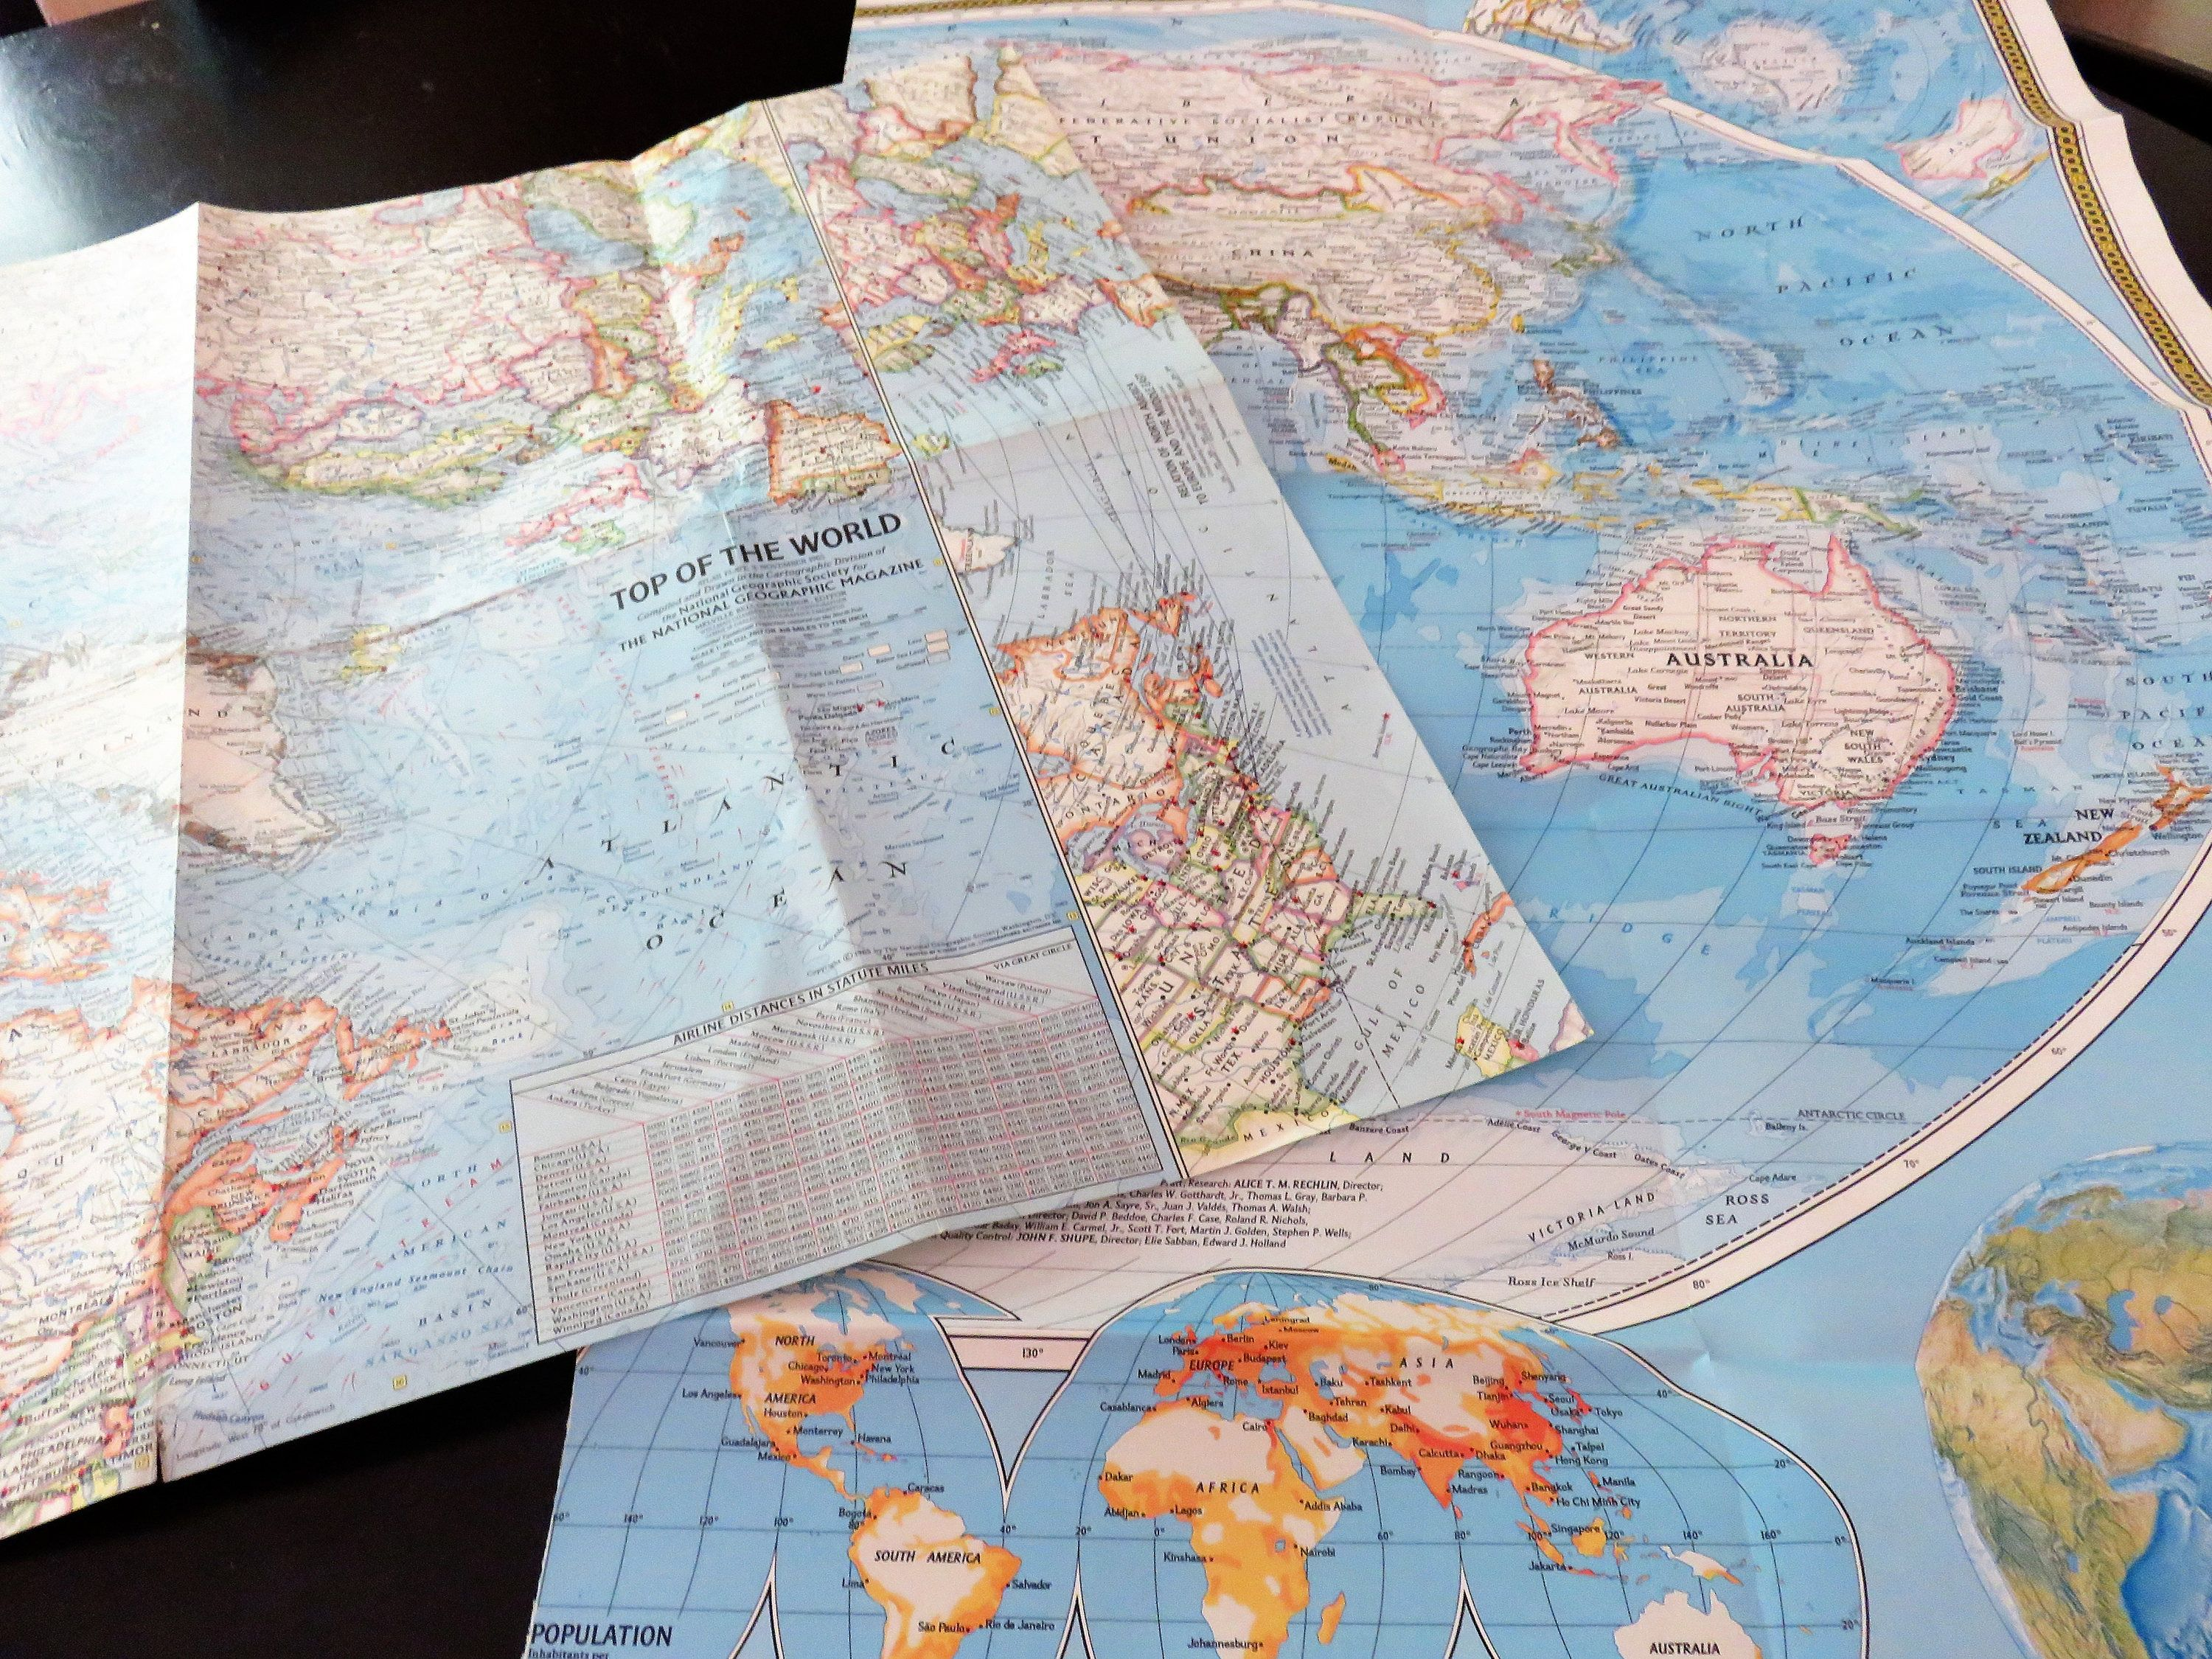 National Geographic Map Set, Two Paper Maps of the World ... on interstate 30 map, interstate map of mississippi and alabama, interstate 85 map, lincoln way map, new jersey route 1 map, interstate highway map, interstate 526 map, interstate 75 map, interstate 70 map, interstate 27 map, us highway 78 map, interstate 80 map, interstate 25 map, interstate 10 map, interstate 422 map, interstate 26 map, interstate 44 map, interstate 74 map,